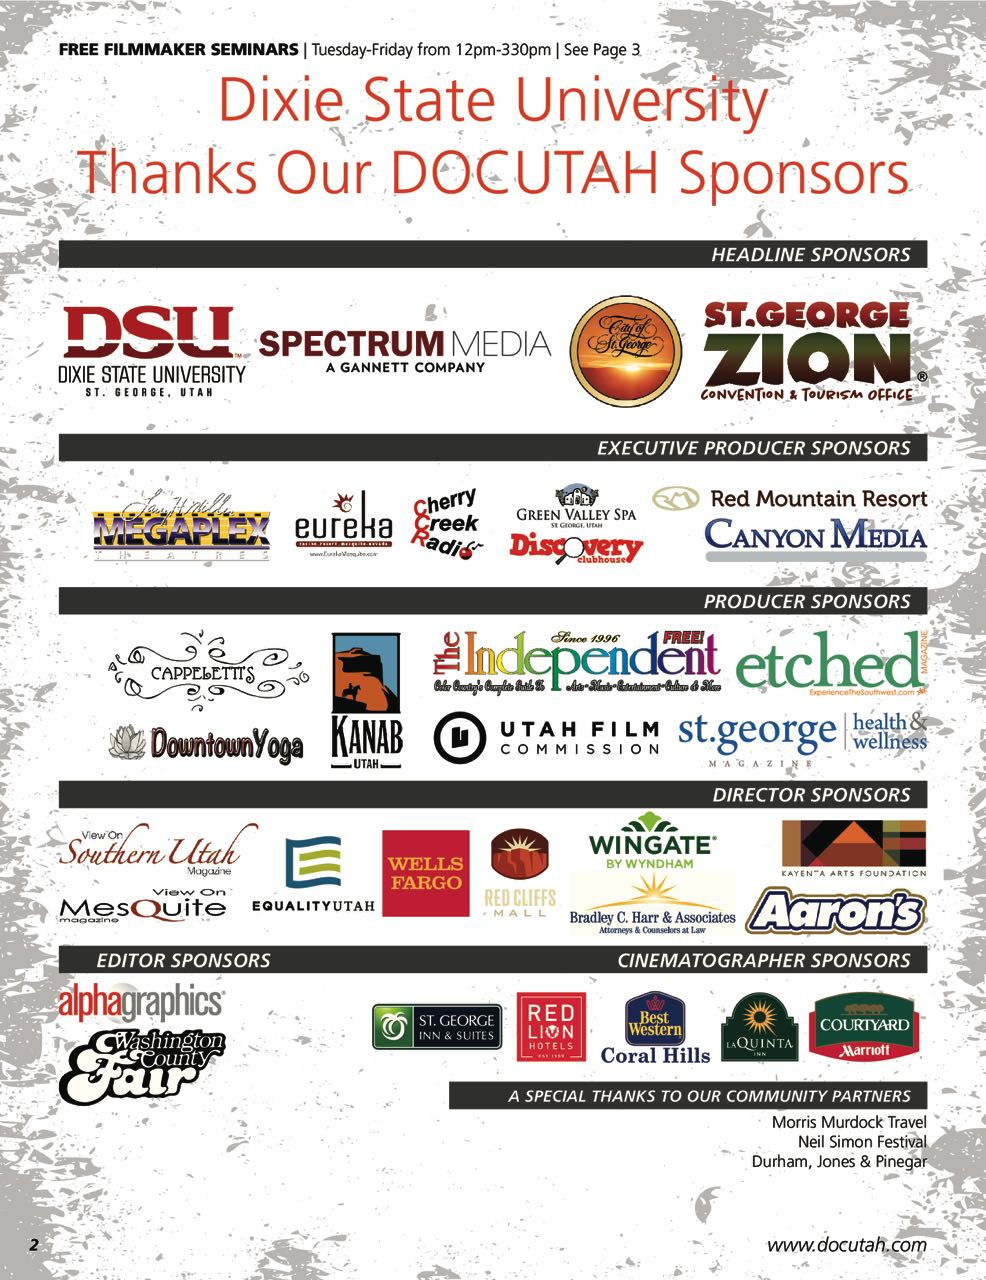 2015_DOCUTAH-Festival-Guide_NO-BLEED-page-1.jpg